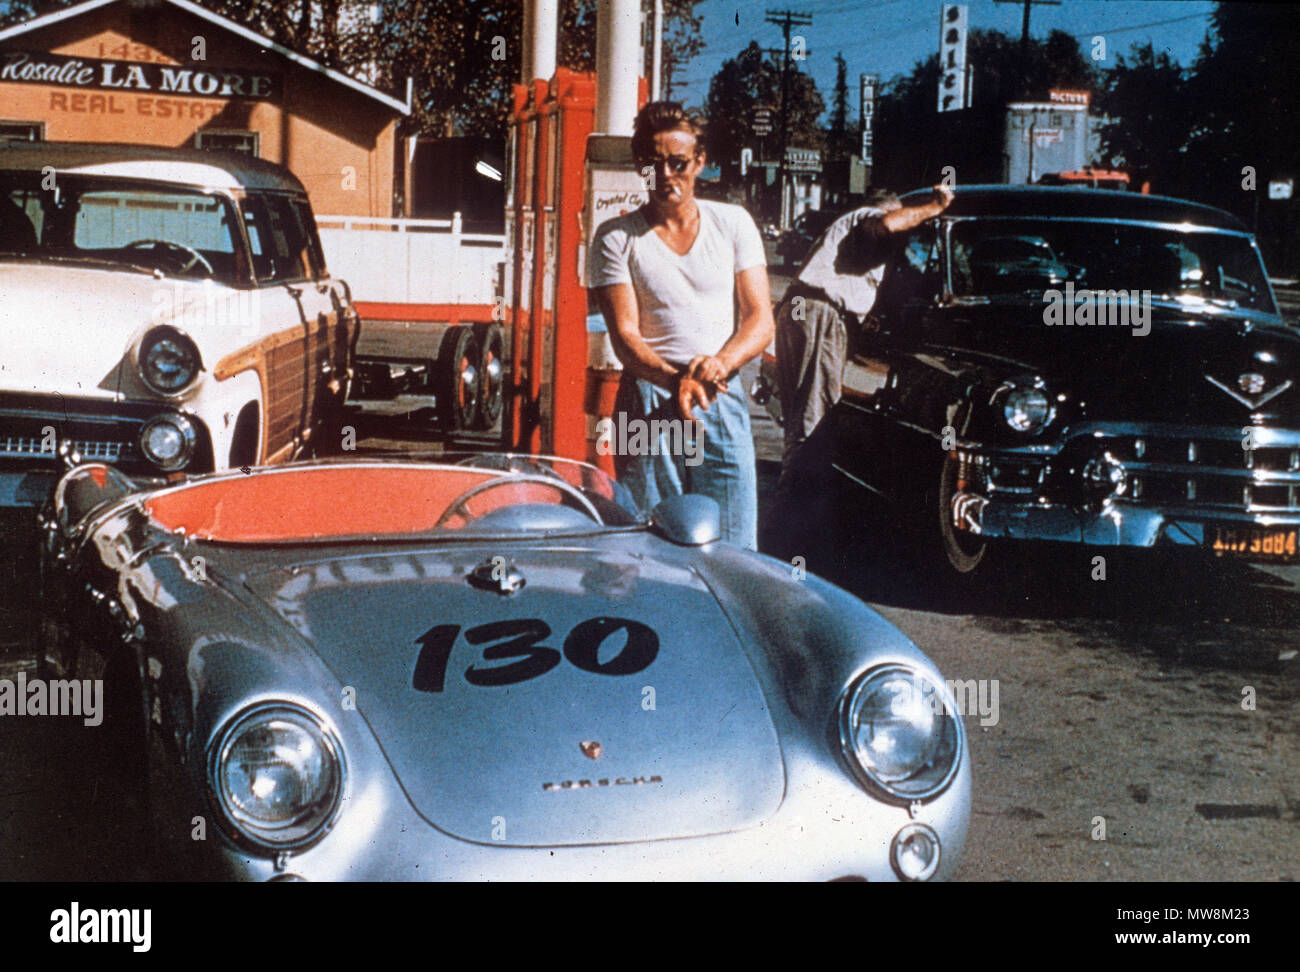 JAMES DEAN (1931-1955) with his Porsche 550 sports car about 1954 - Stock Image